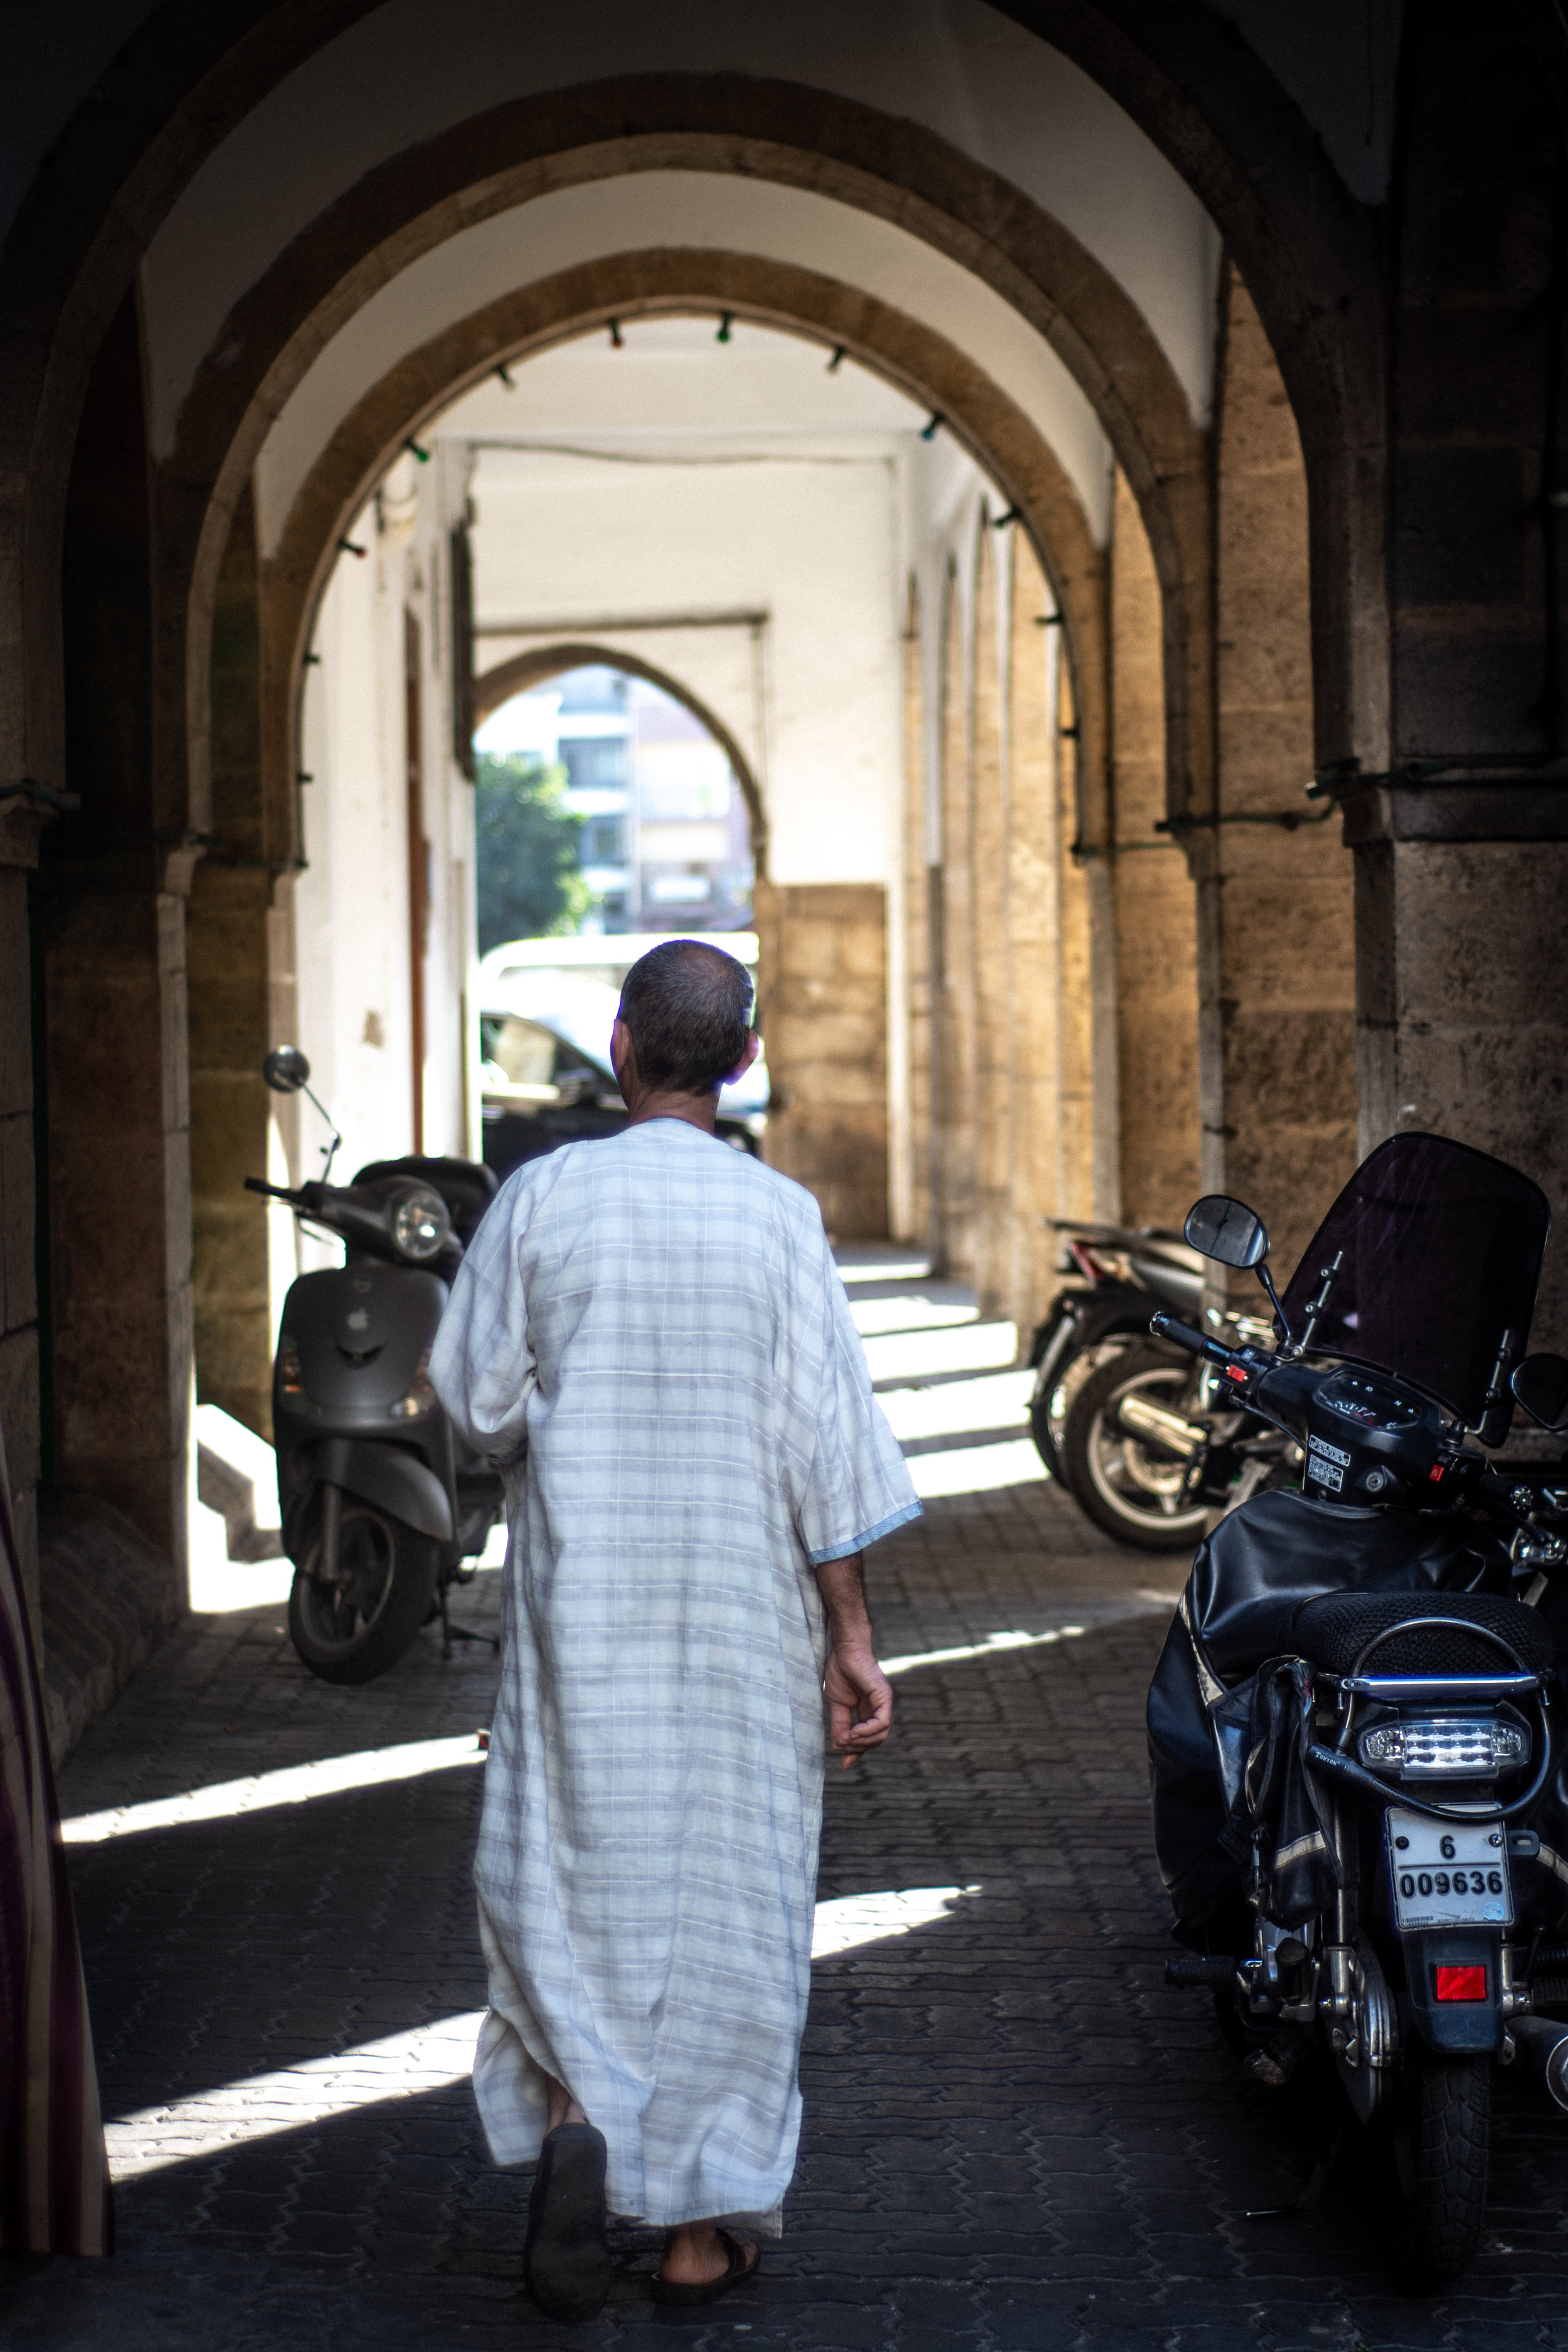 An older man walks along the arched corridors of the medina